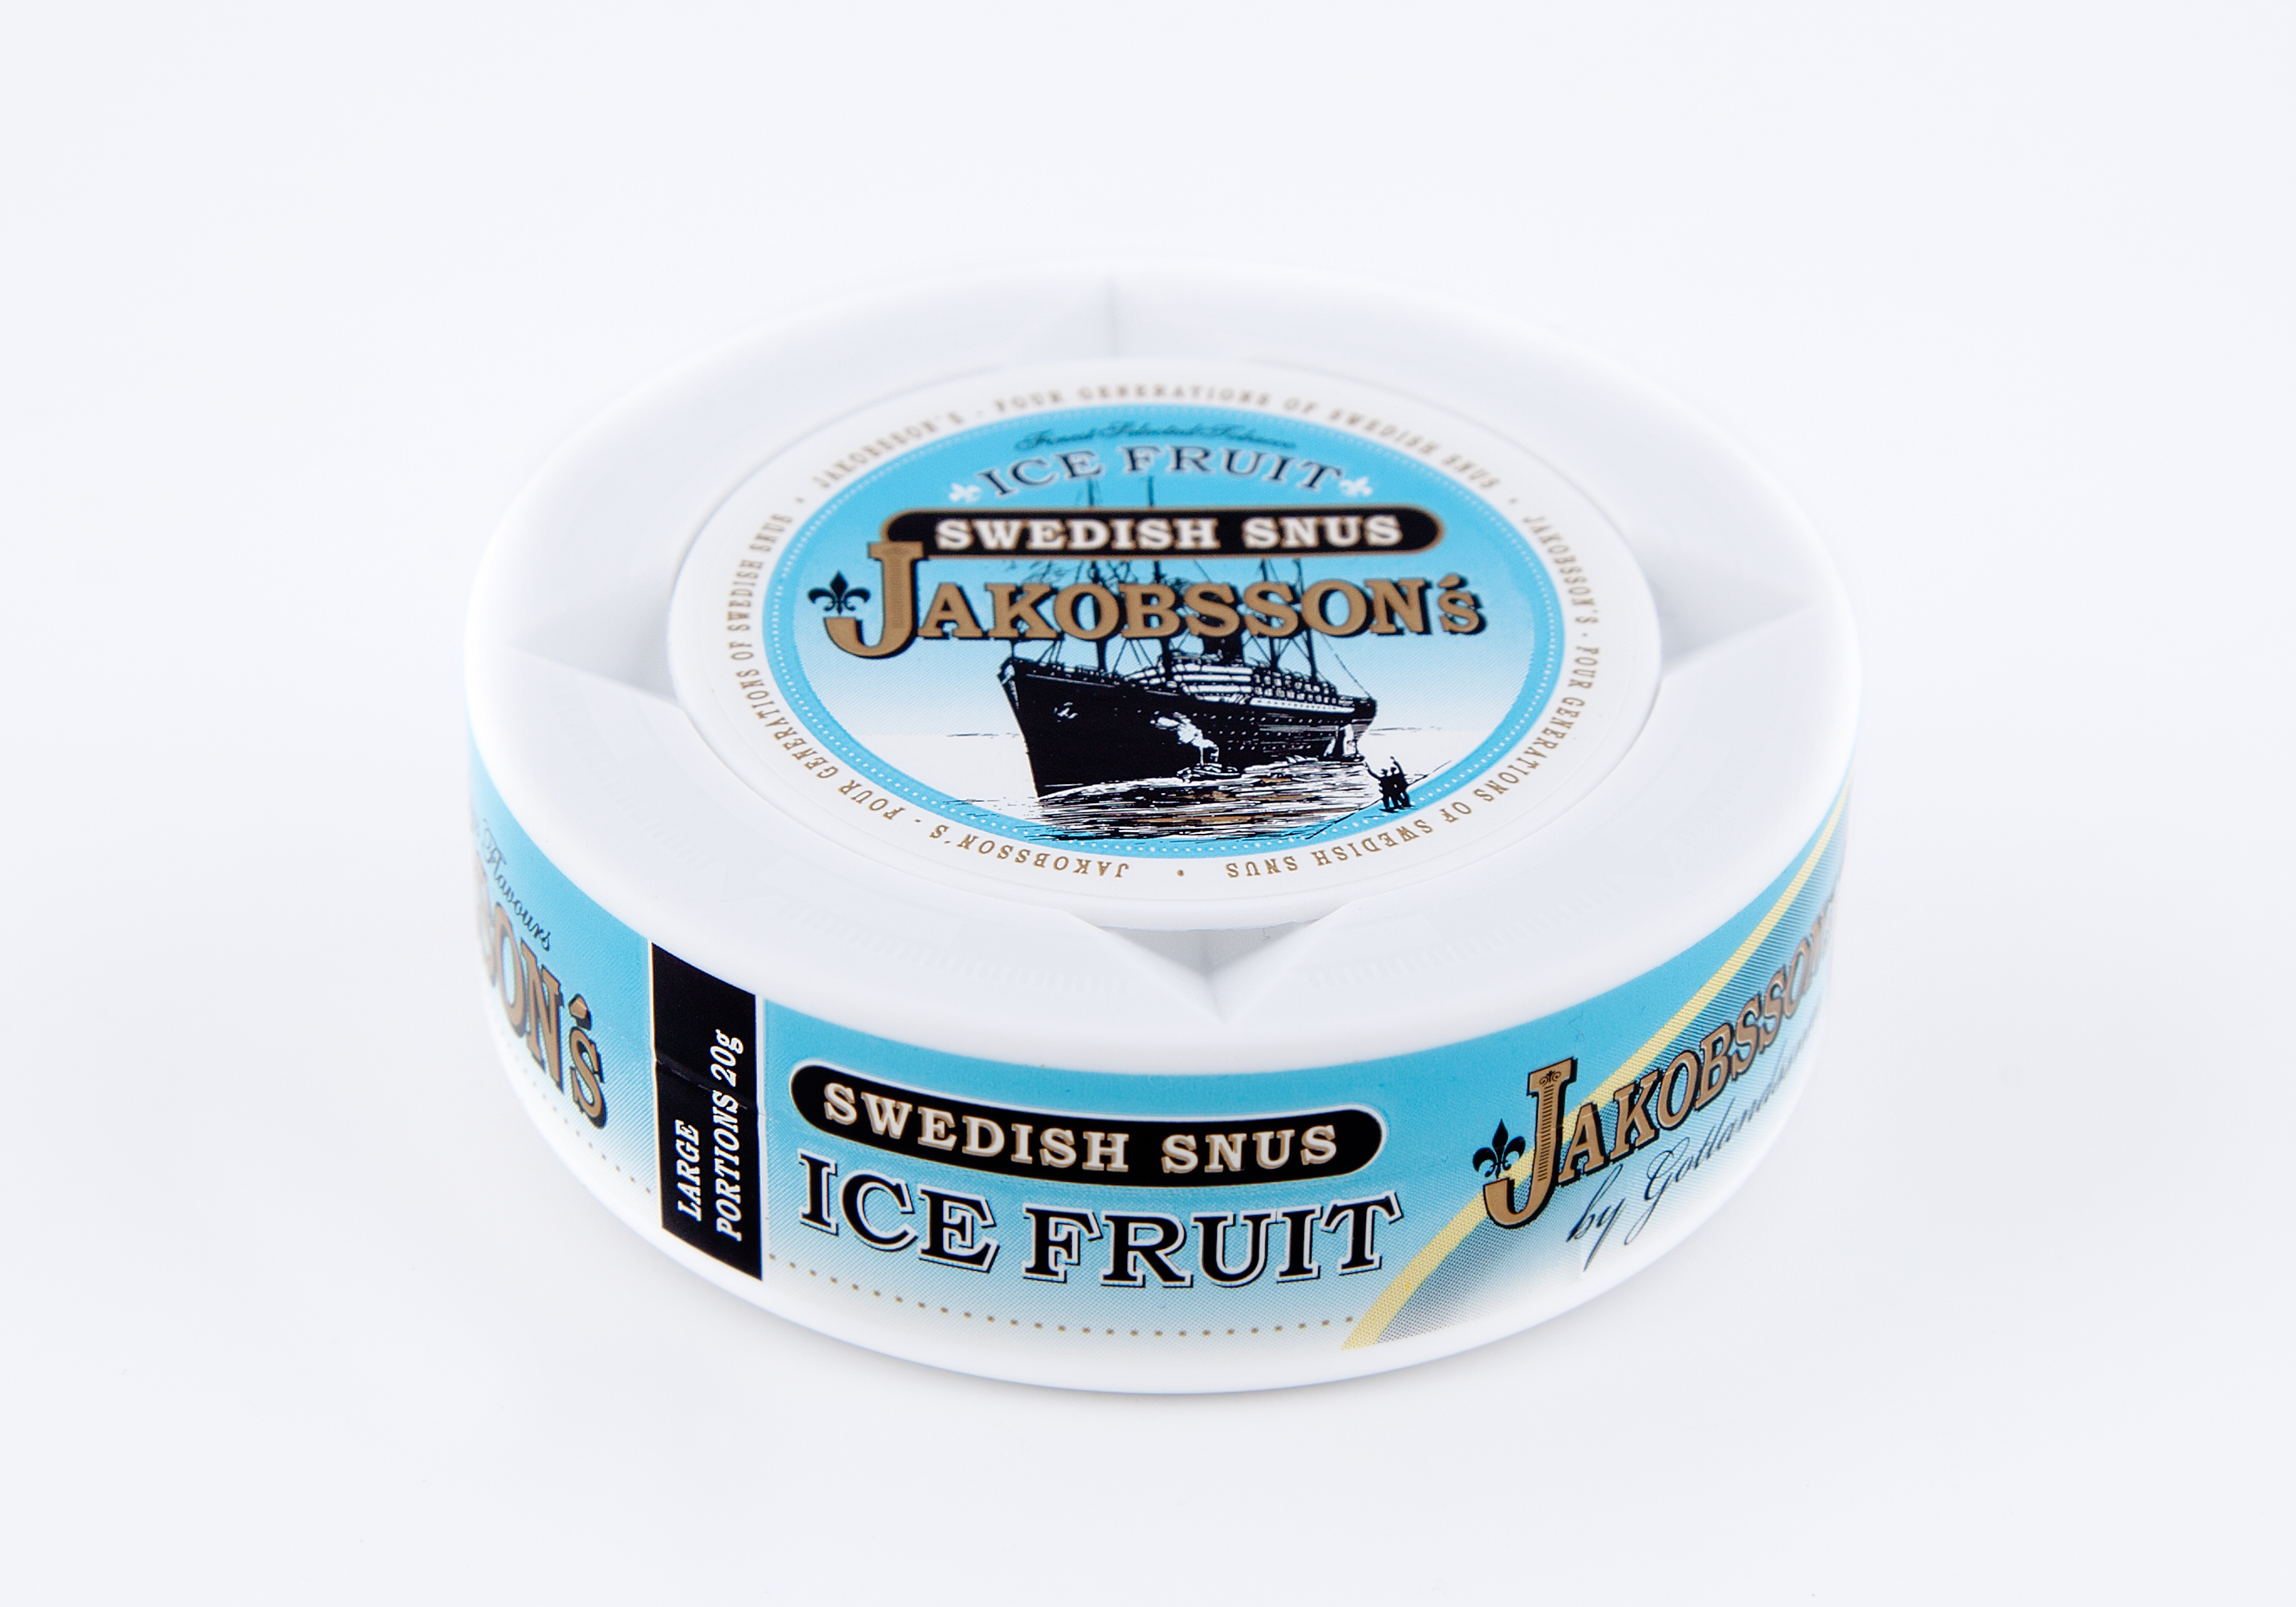 jakobssons ice fruit portion